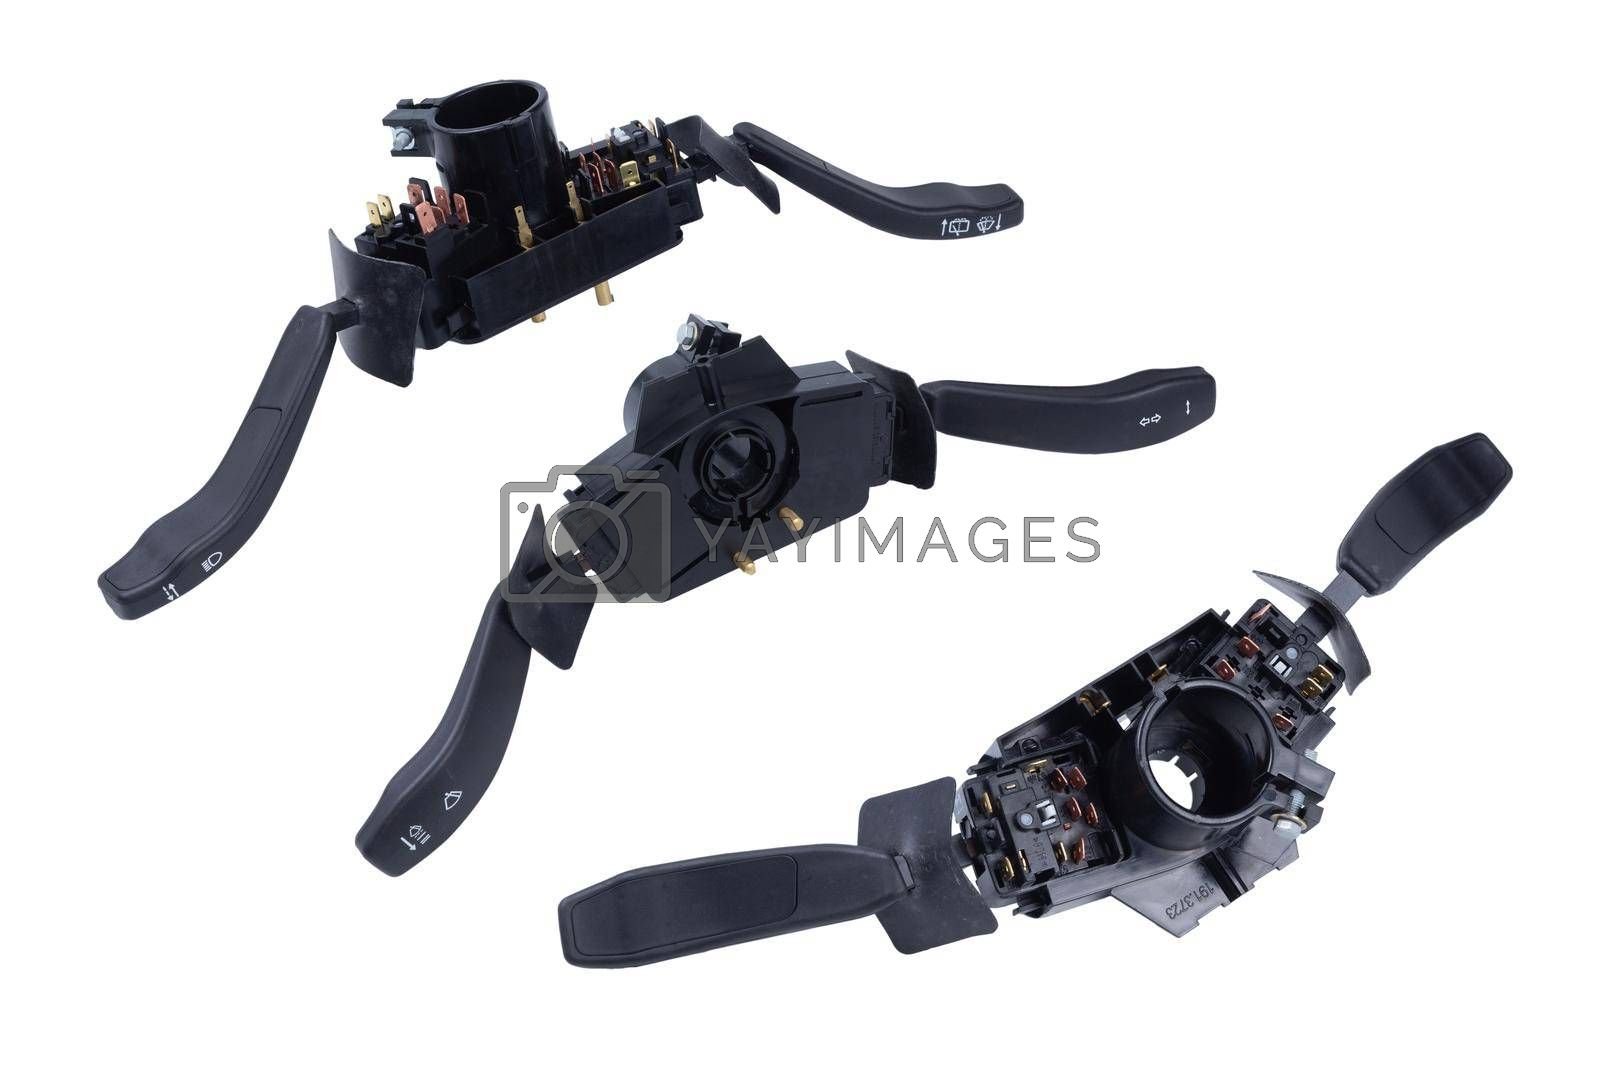 Steering wheel switches for windshield wipers and turn signals disassembled on a white isolated background in a photographic. by forester